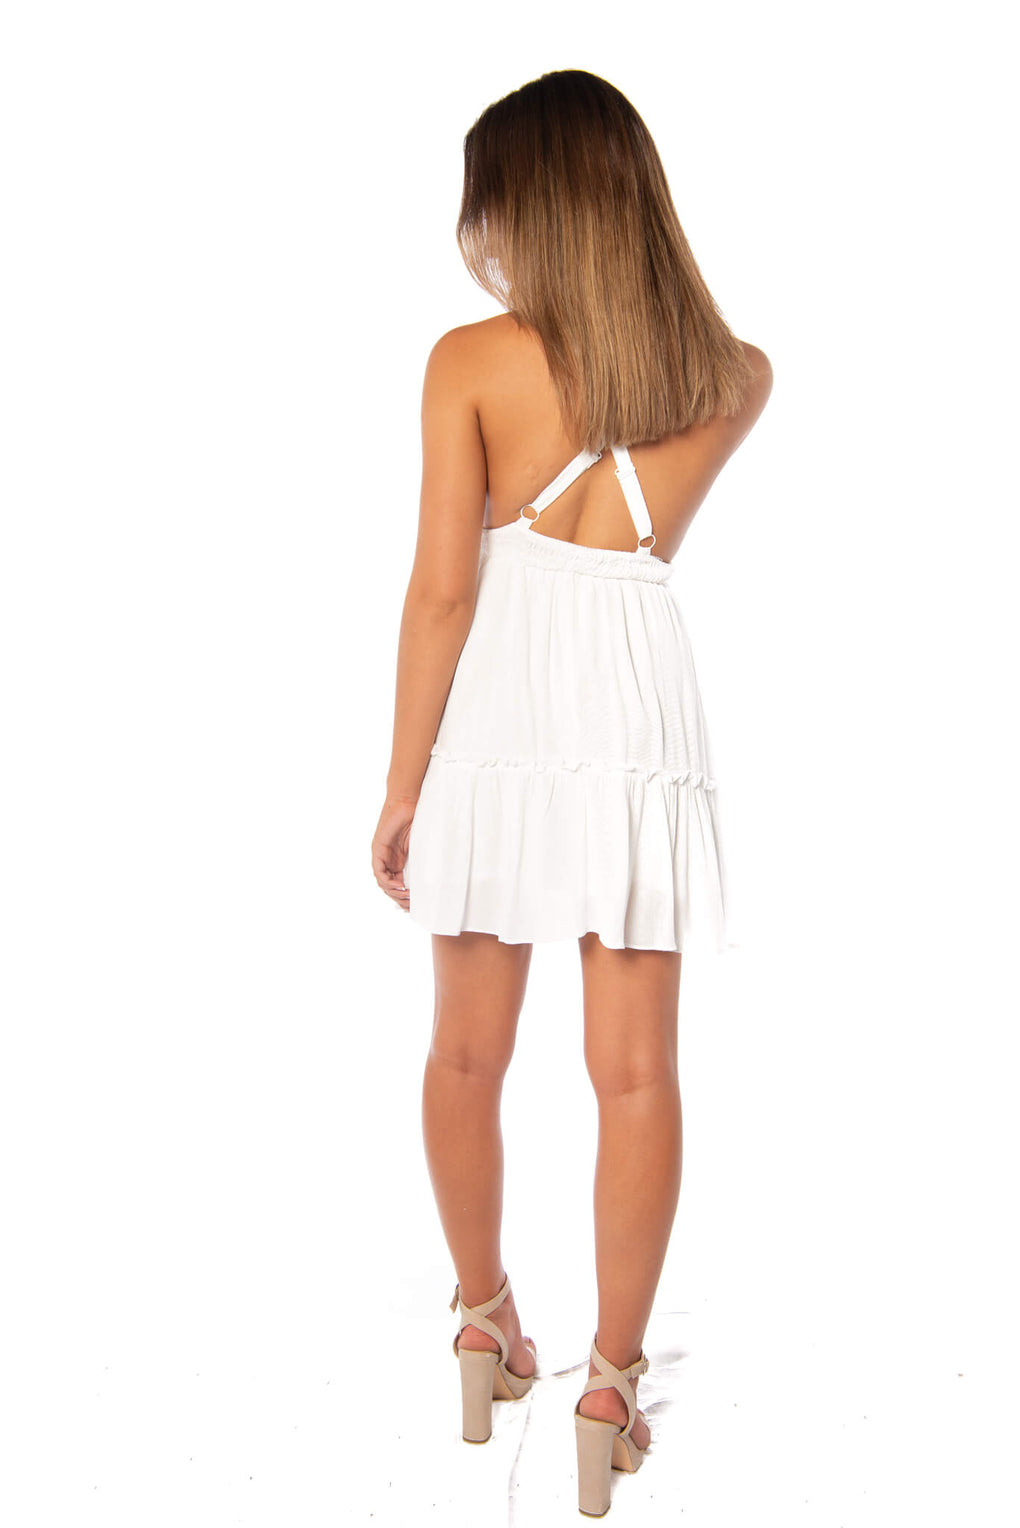 LETTERS DRESS - WHITE